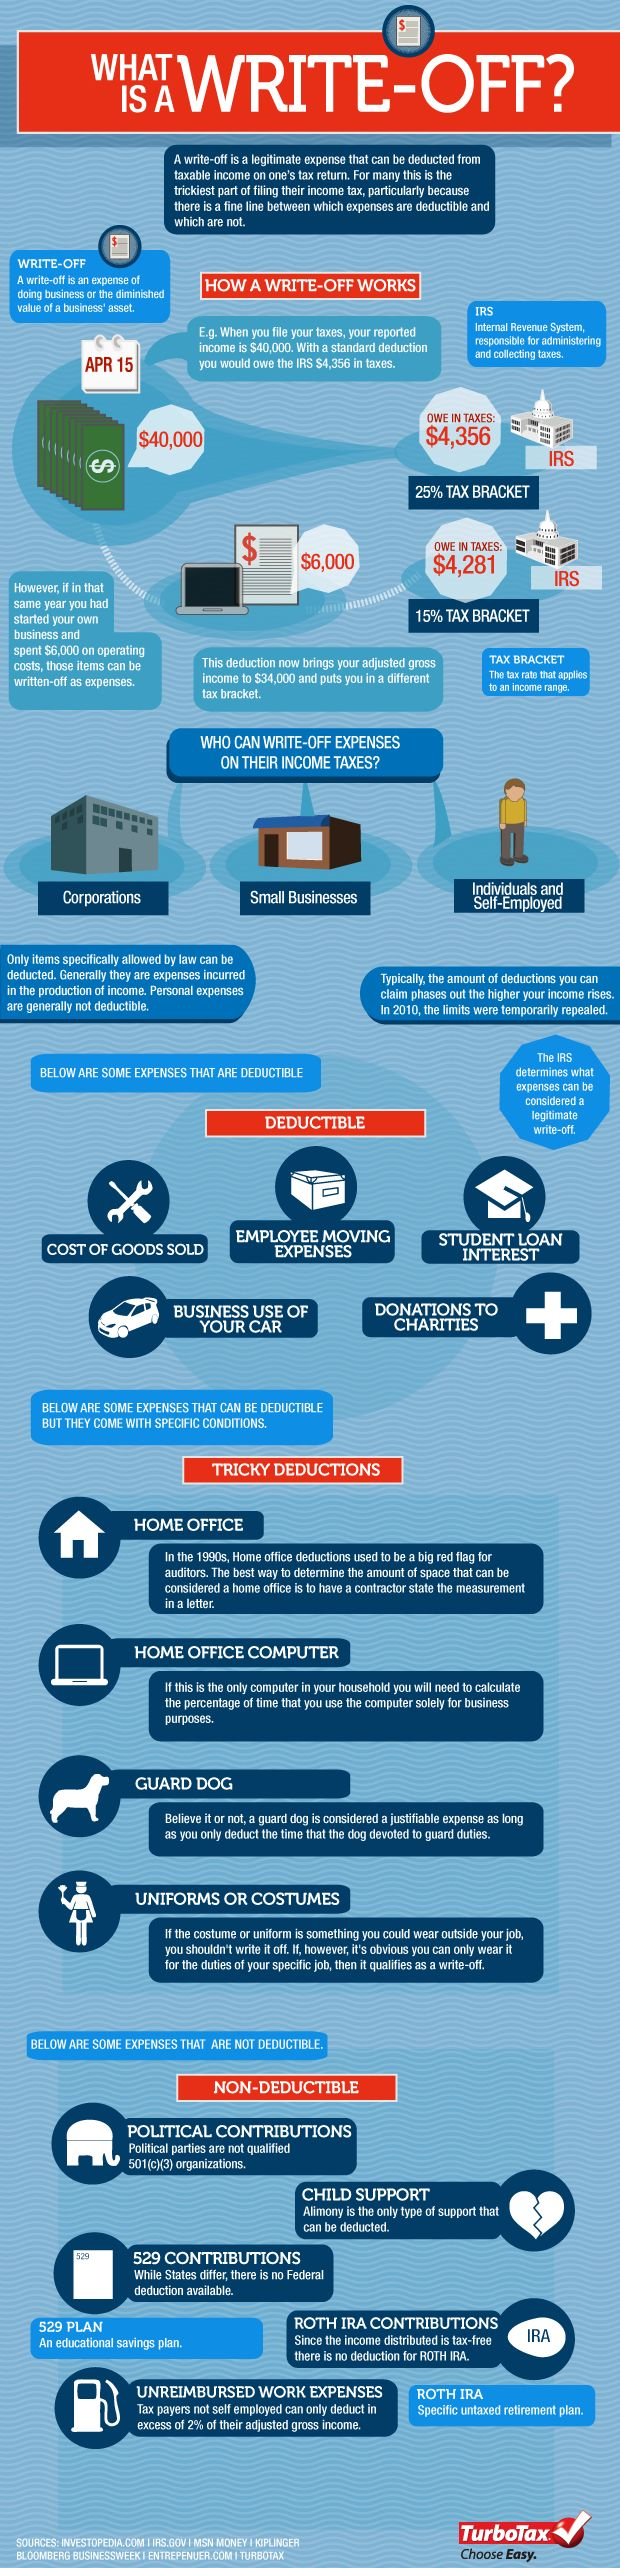 What Is A Tax Write Off? | Tax Break: The TurboTax Blog. Accounting Student Accounting BasicsFinancial ...